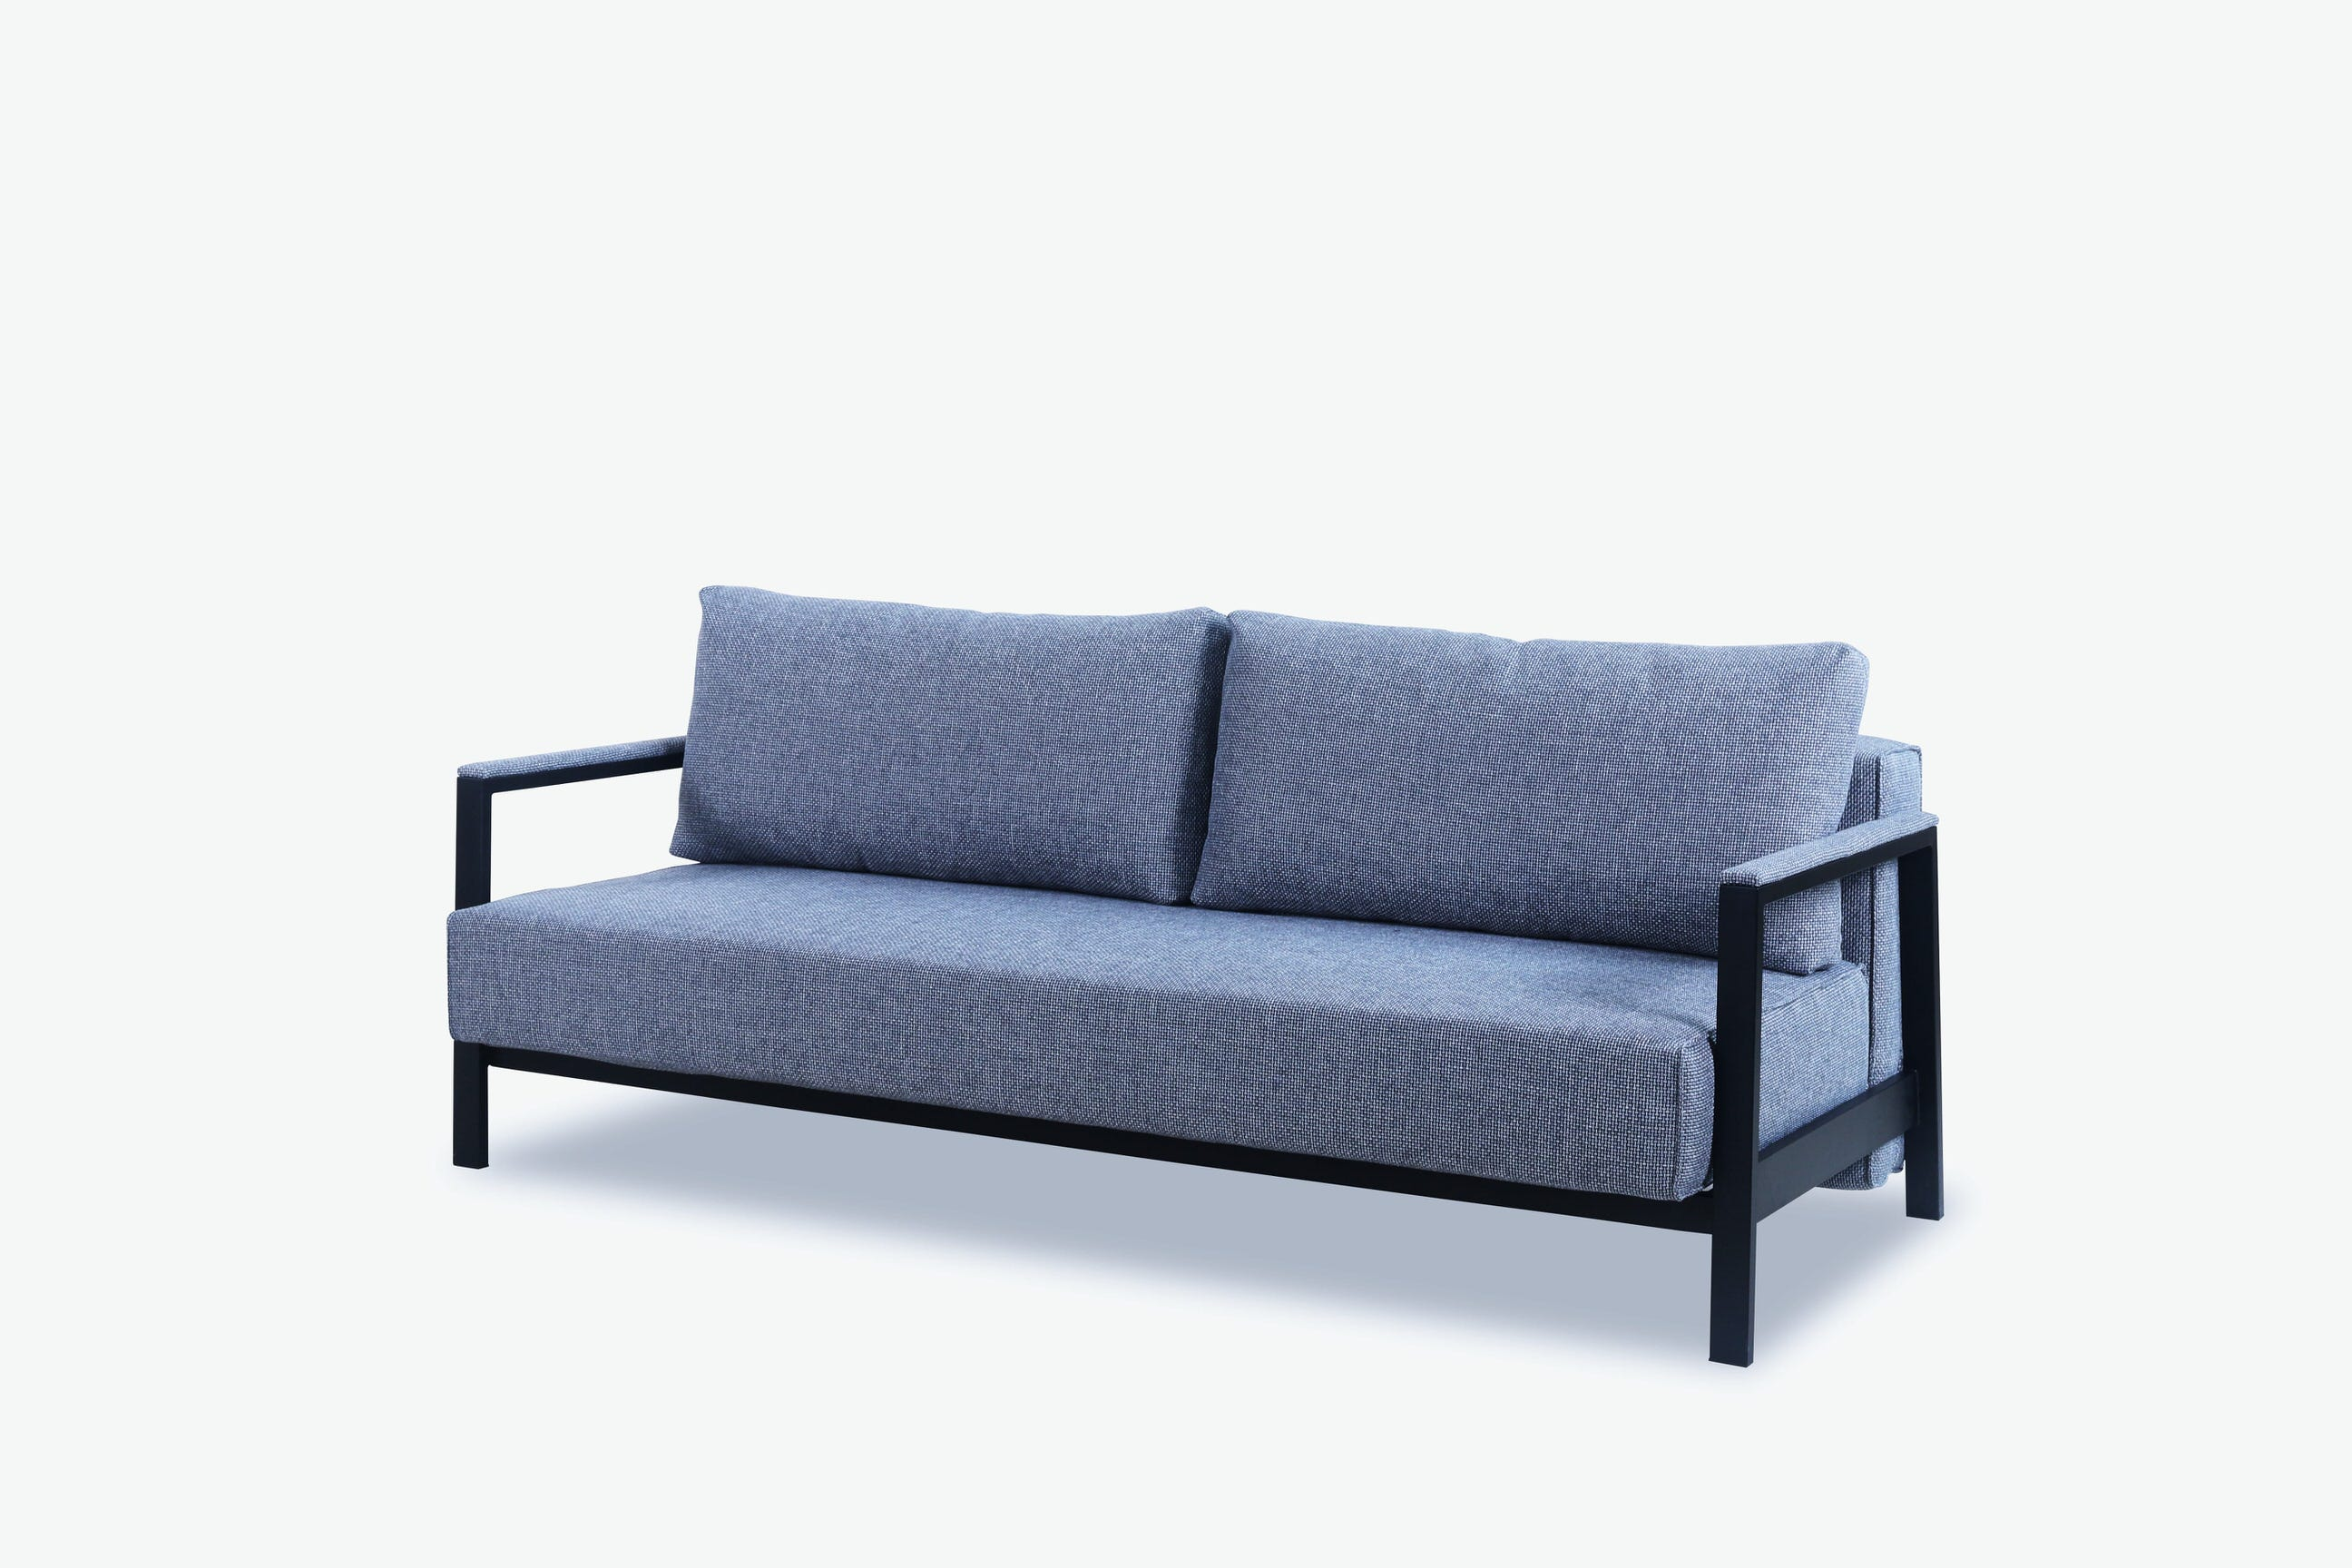 floor sofa bed round lounger sample 17 gray by new spec